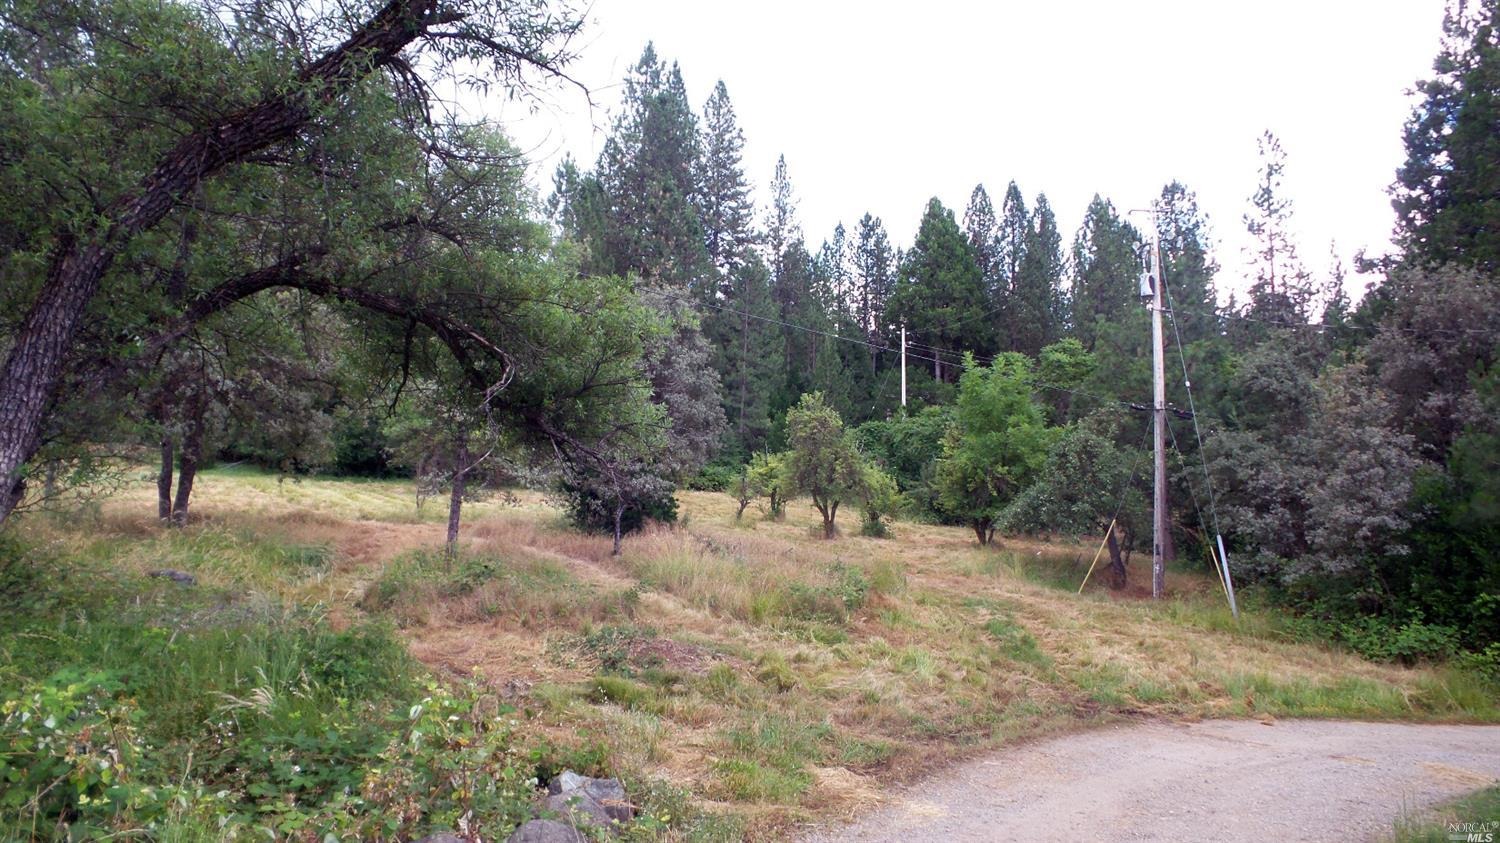 850 Lot 3 Kingston way Colfax, CA 95713 - MLS #: 21716759